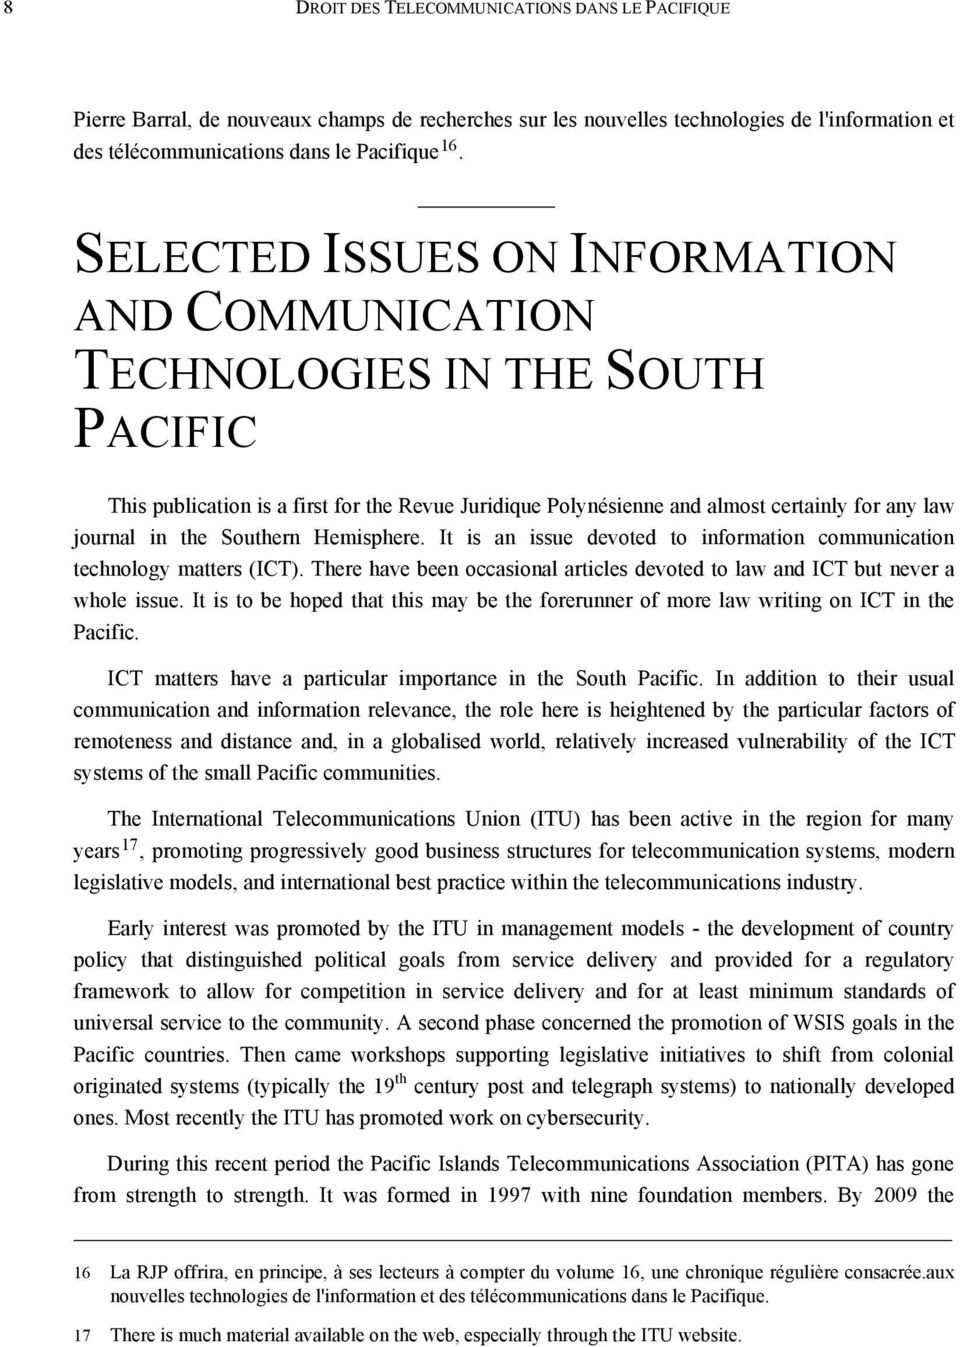 Southern Hemisphere. It is an issue devoted to information communication technology matters (ICT). There have been occasional articles devoted to law and ICT but never a whole issue.